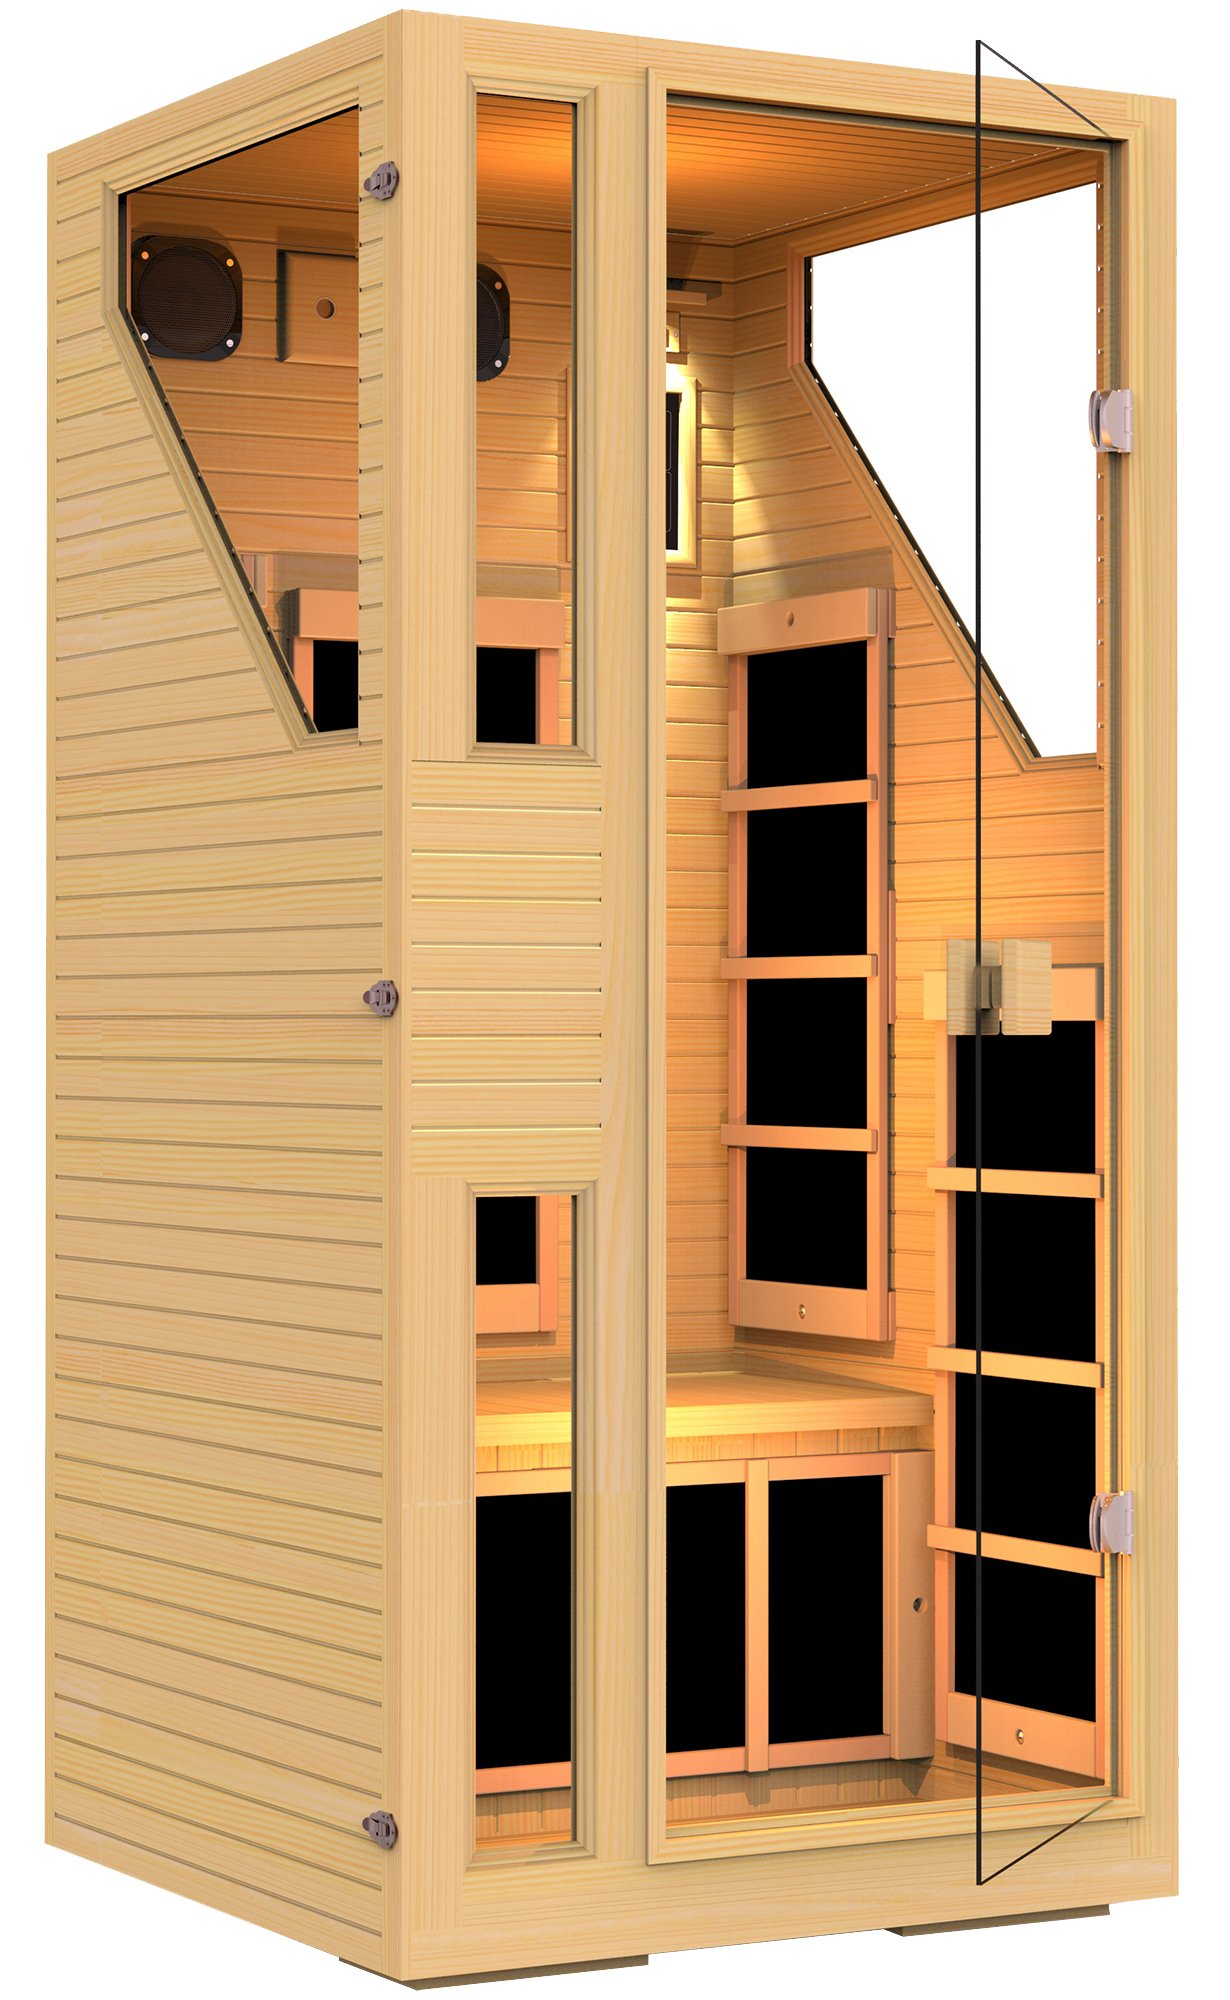 JNH Lifestyles NE1HB1 ENSI Collection 1 Person NO EMF Infrared Sauna Limited by JNH Lifestyles (Image #3)